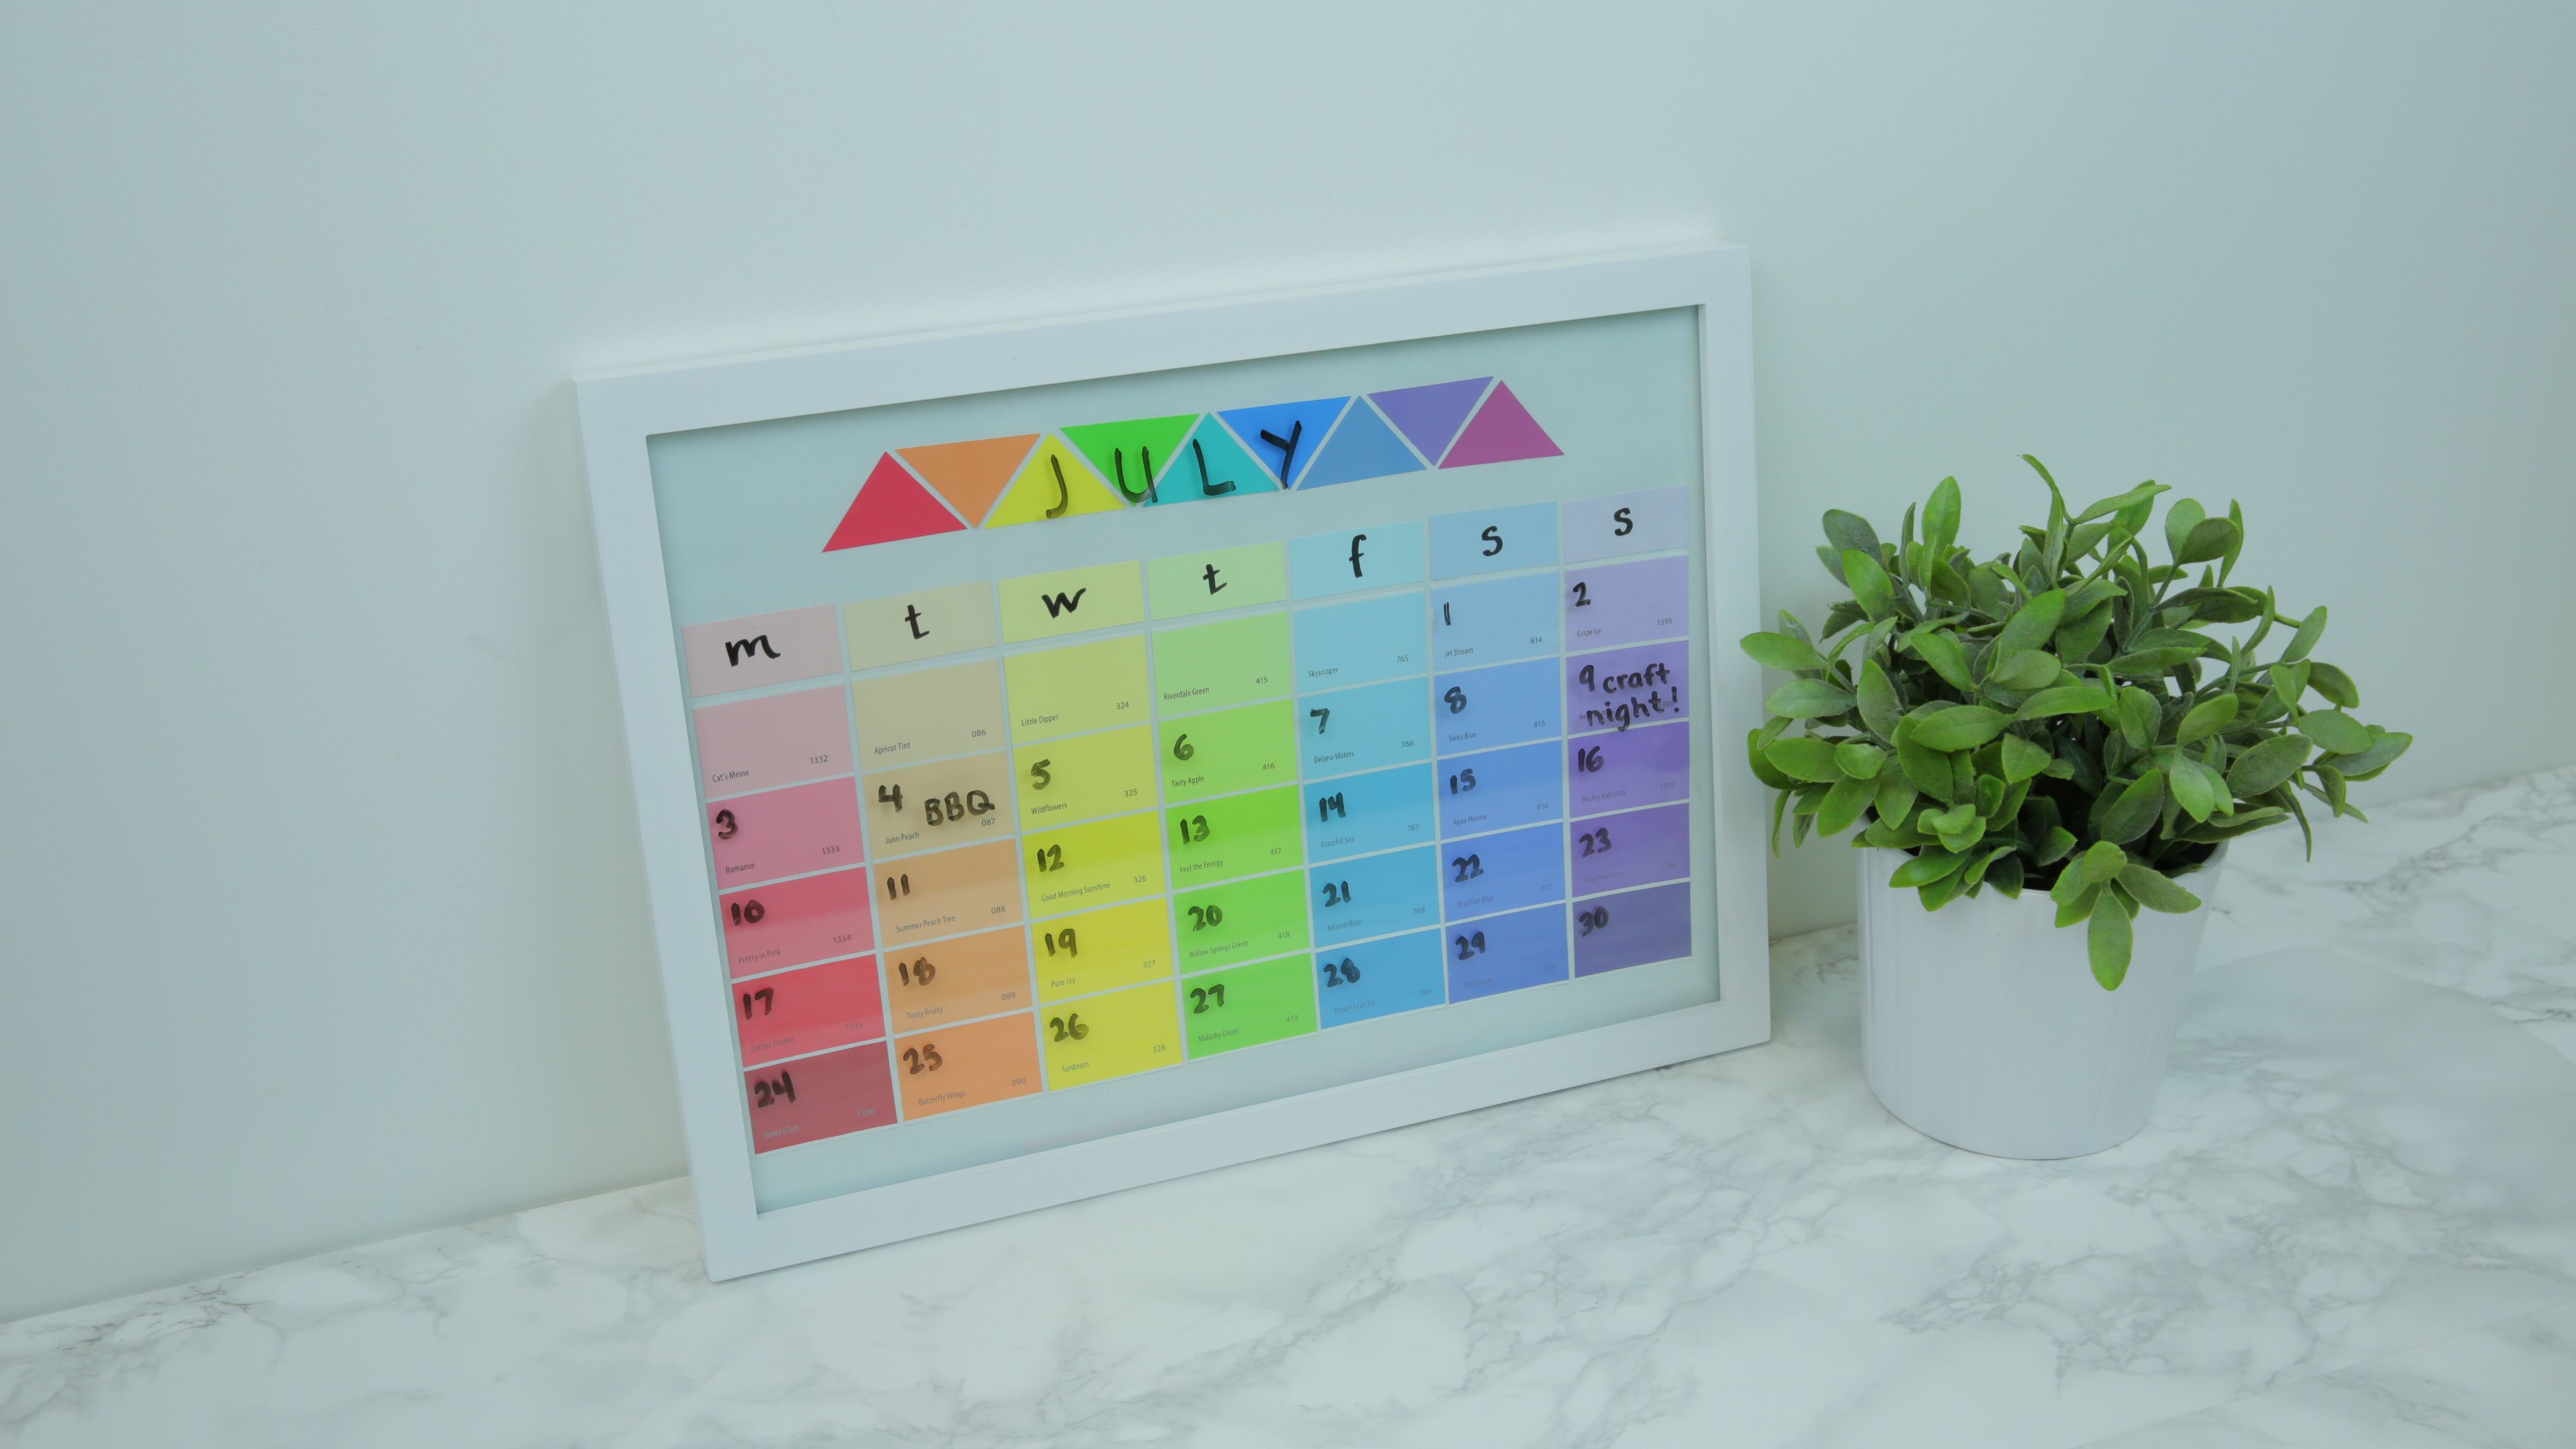 Diy Rainbow Calendar : This diy rainbow calendar is the most whimsical way to